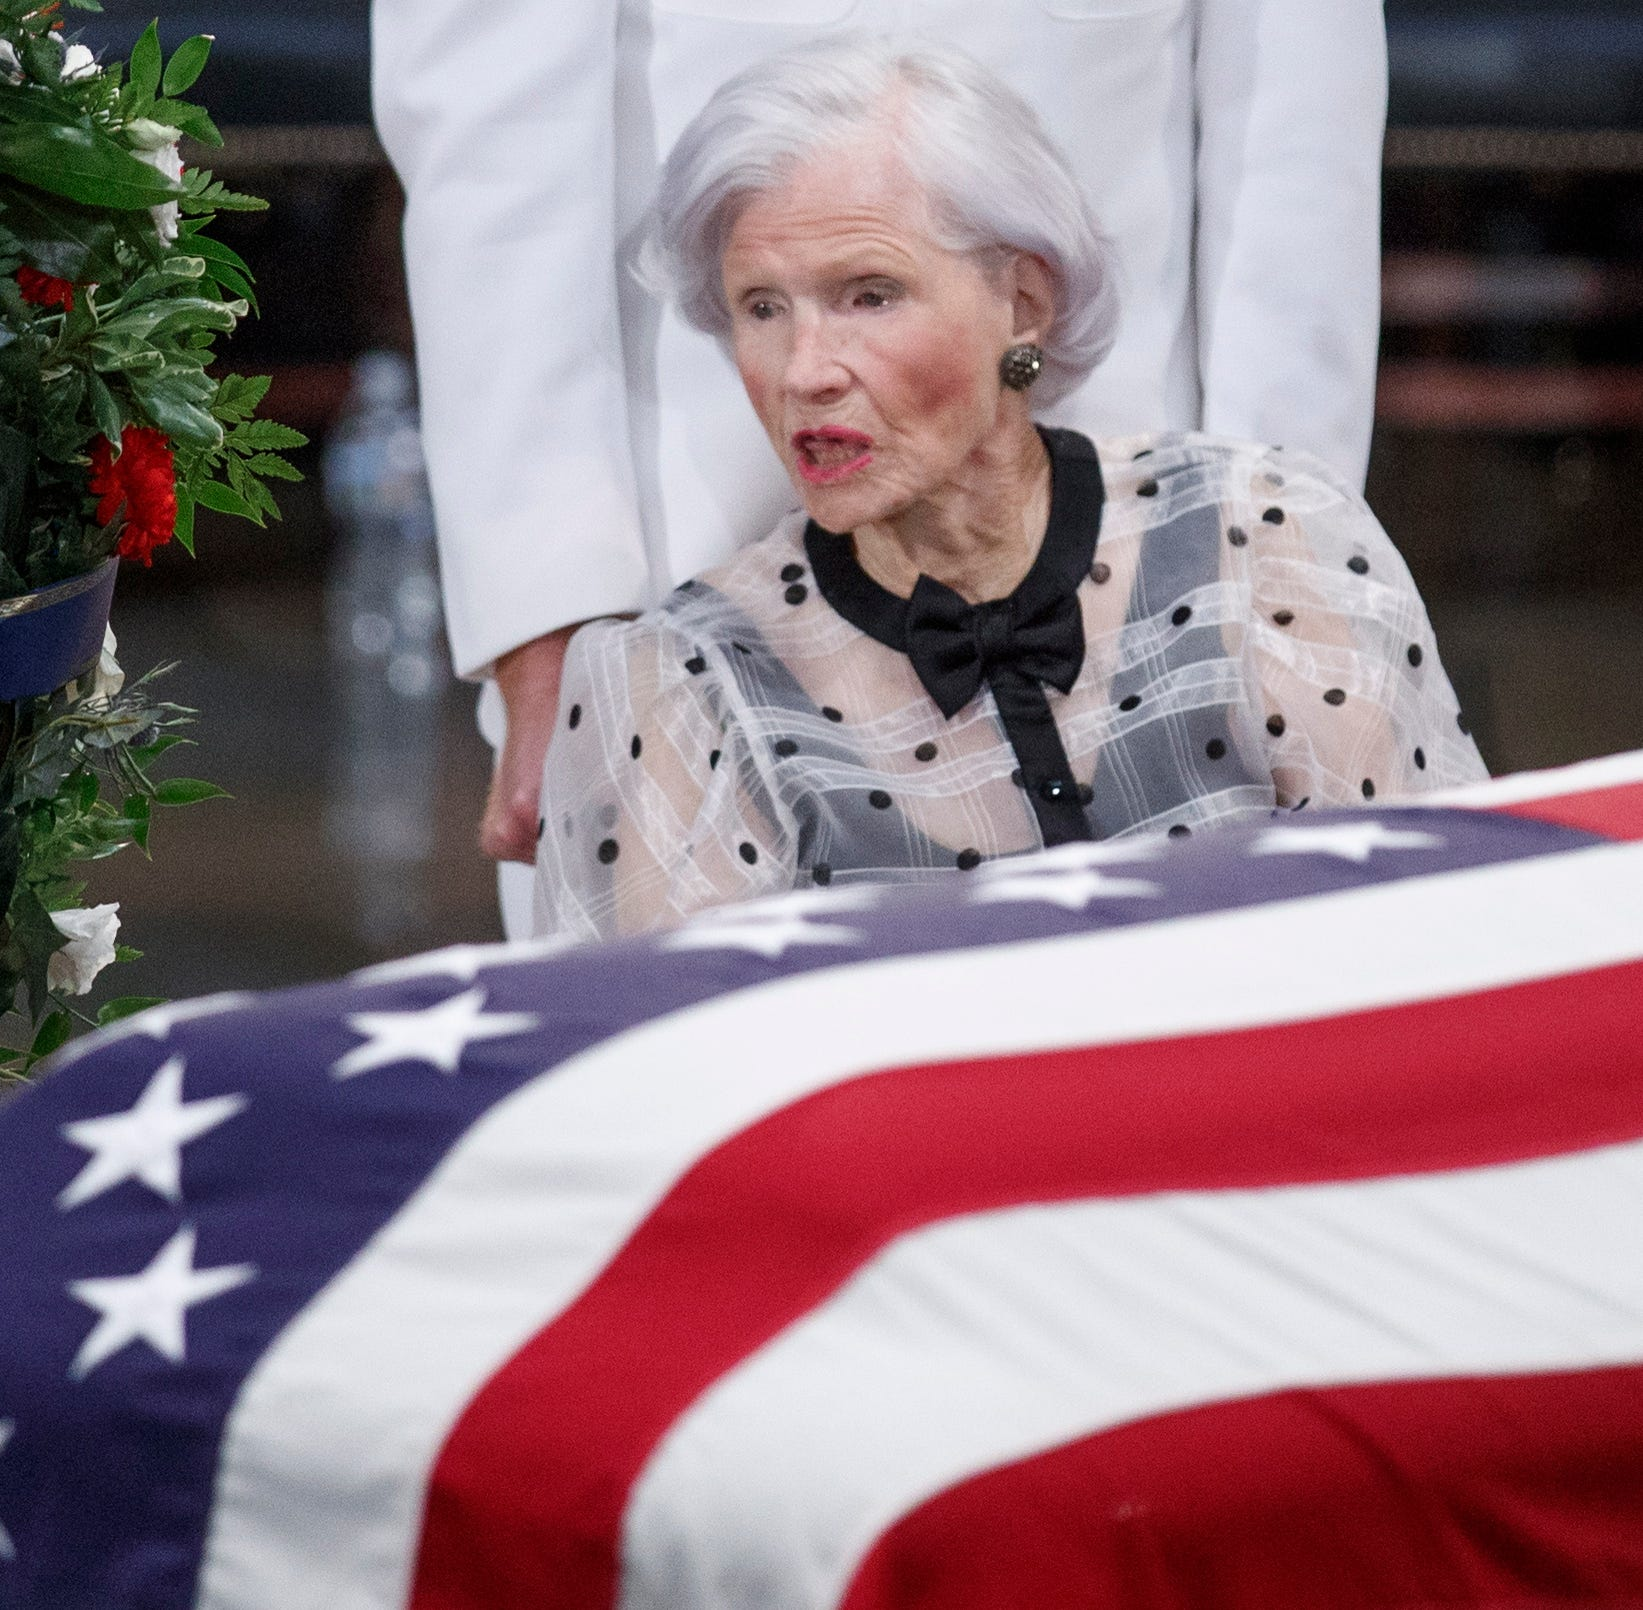 Roberta McCain takes a moment at the casket of her son Sen. John McCain after a memorial service in the Rotunda, where he will lie in state for the rest of the day in Washington, D.C., on Aug. 31, 2018.